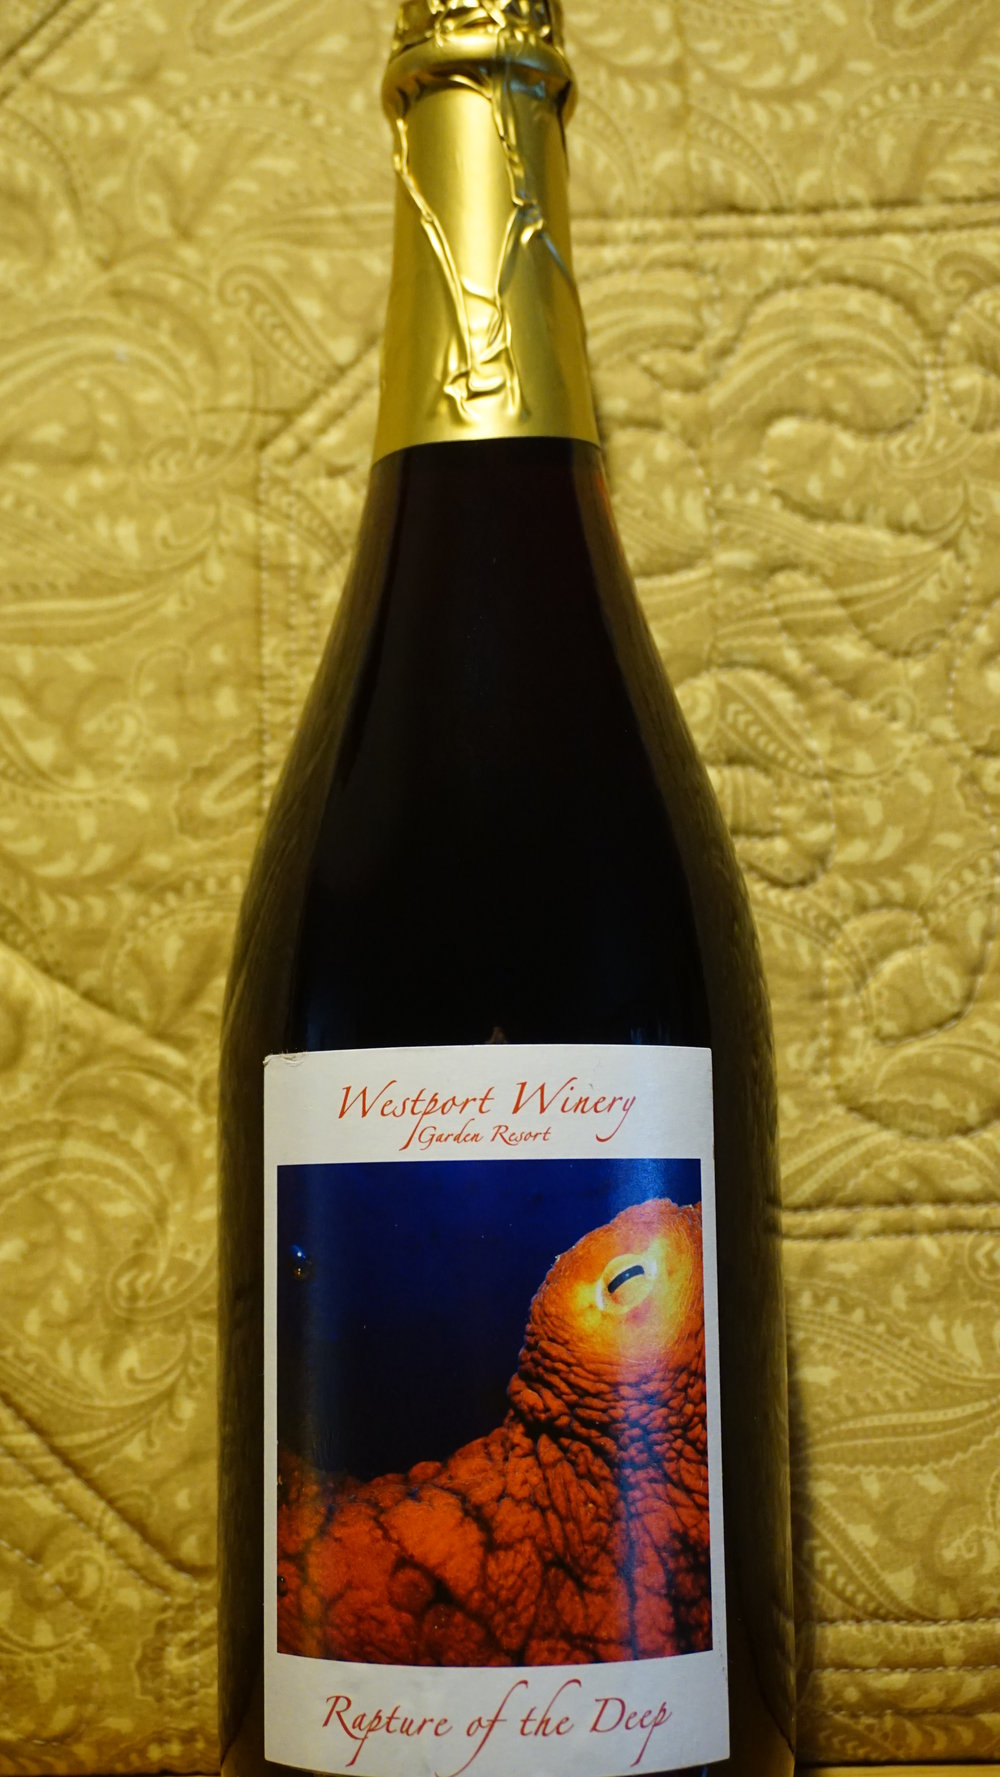 Westport Winery's Rapture of the Deep is a sparkling cranberry wine that does a great job setting a celebratory mood for the Day of Thanks. Viki Eierdam